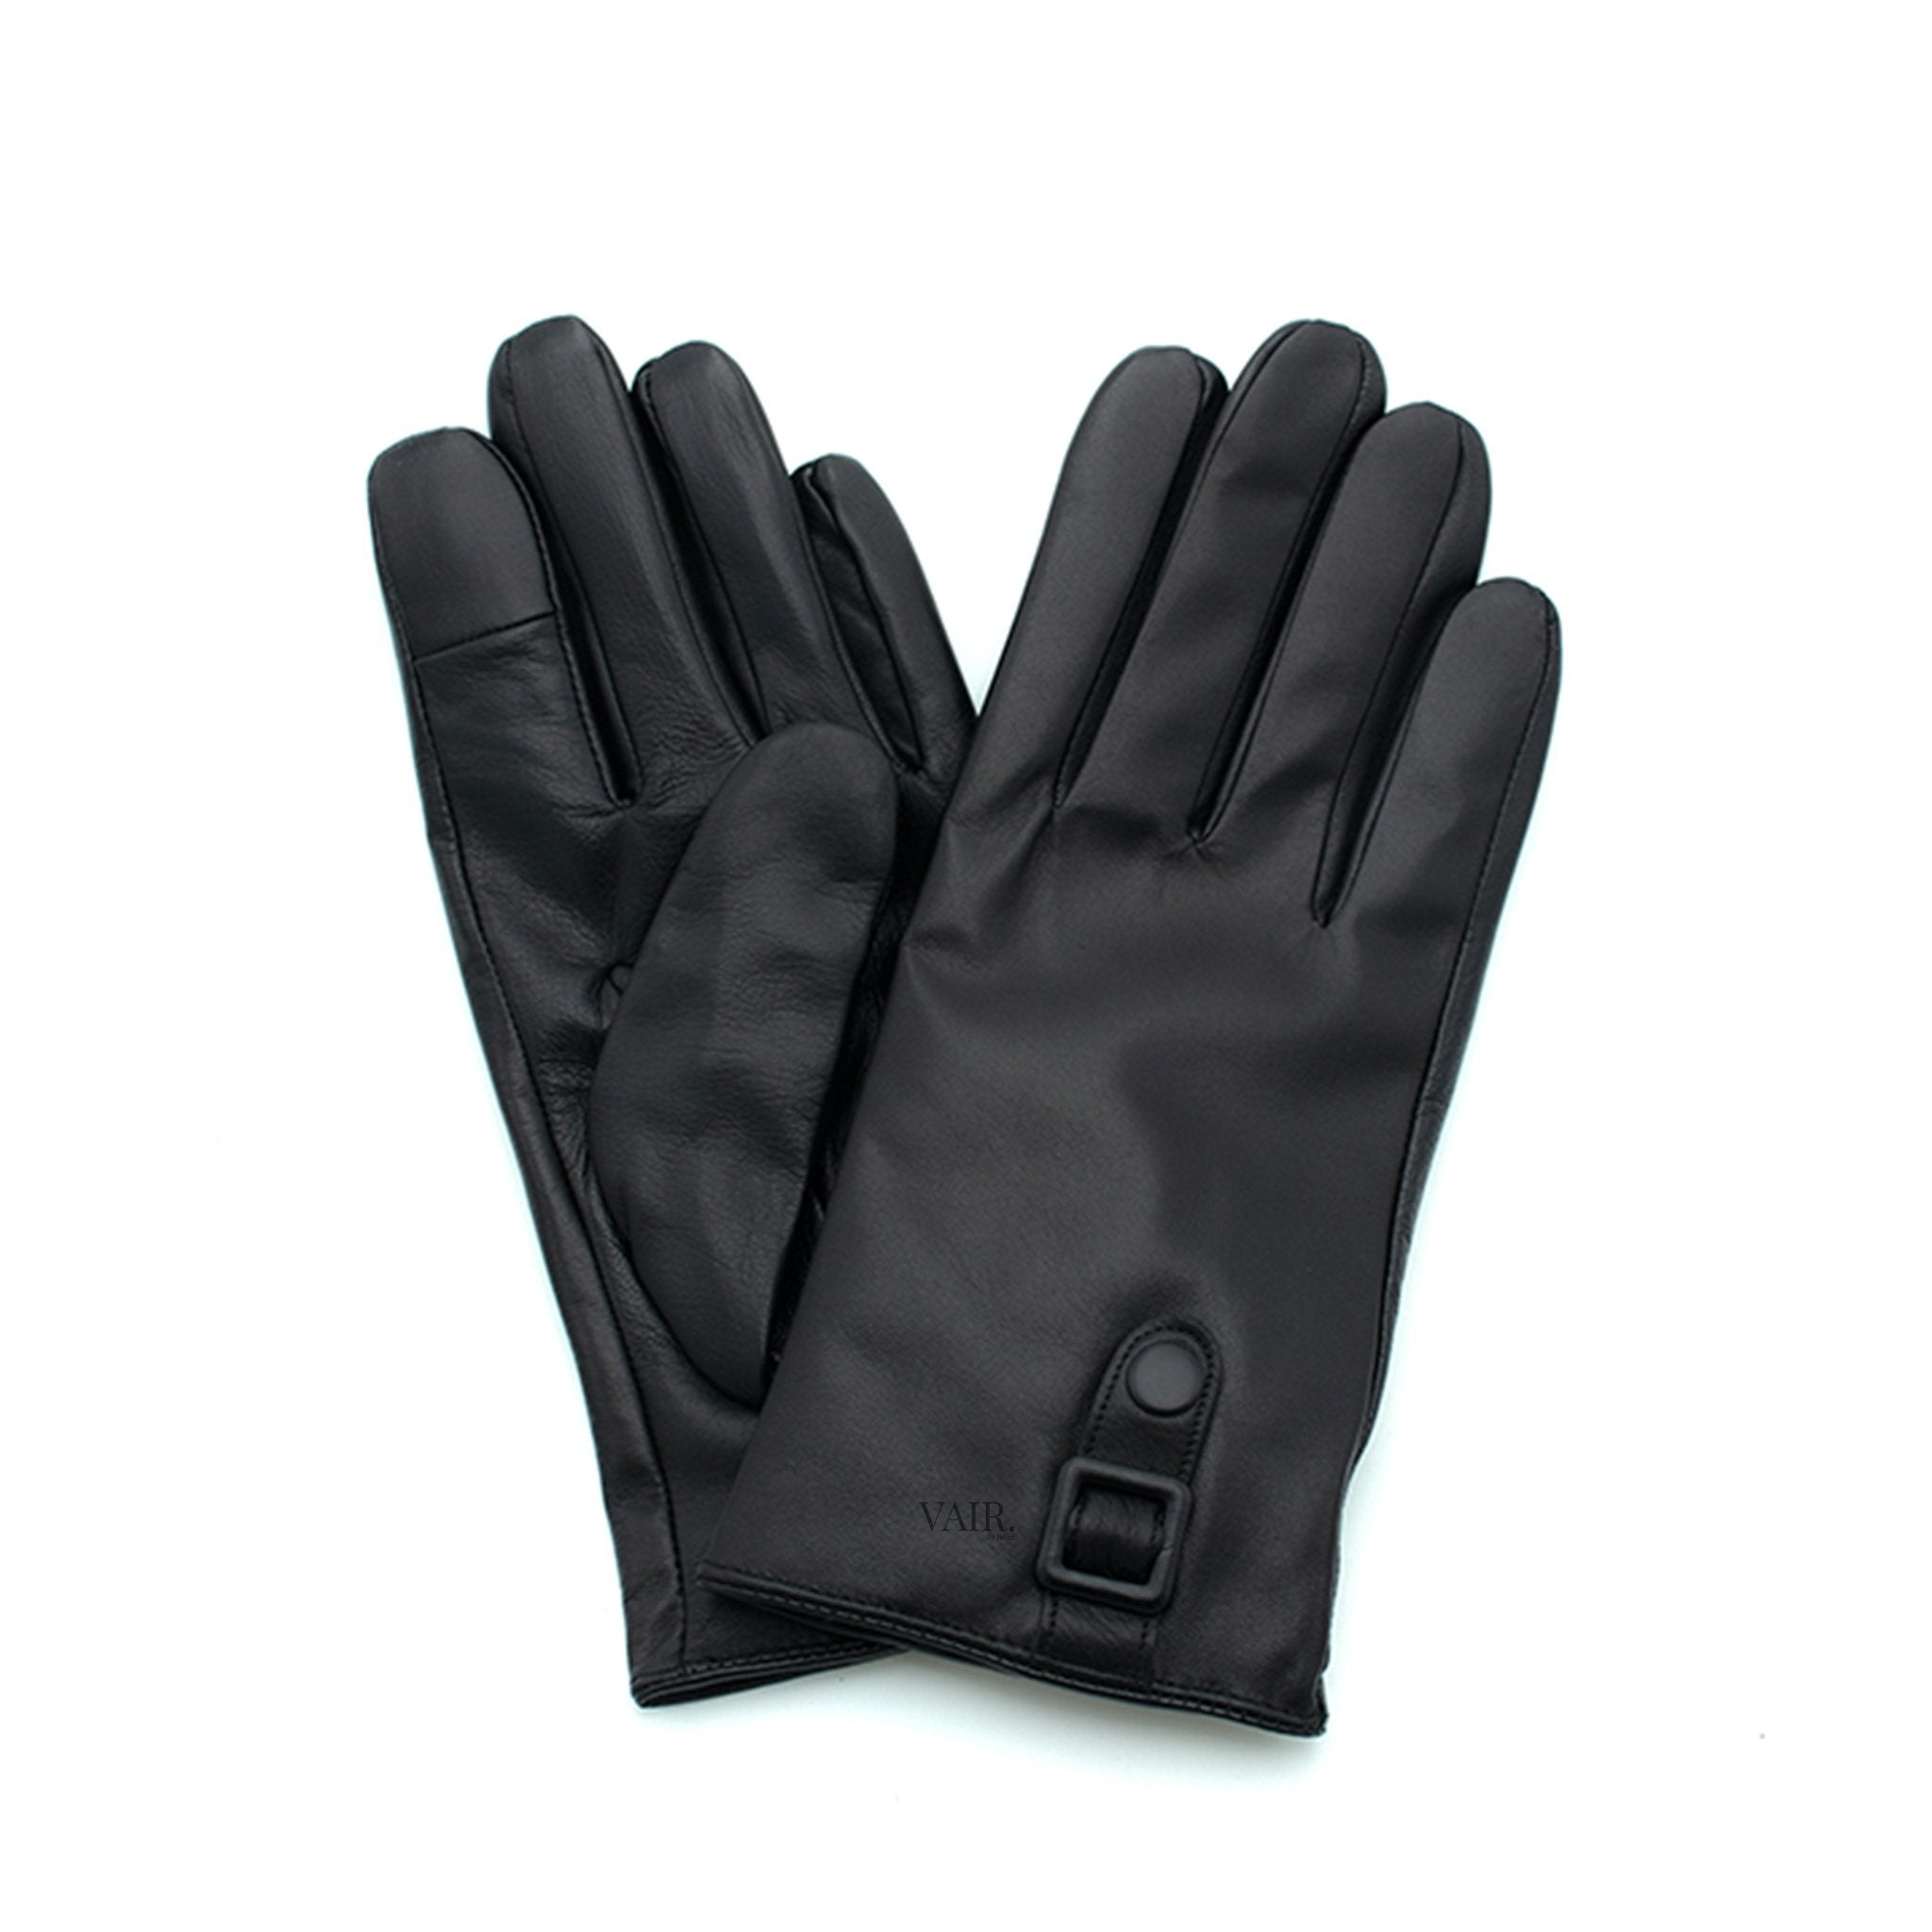 black signature mens leather gloves with cashmere lining by juliette vair